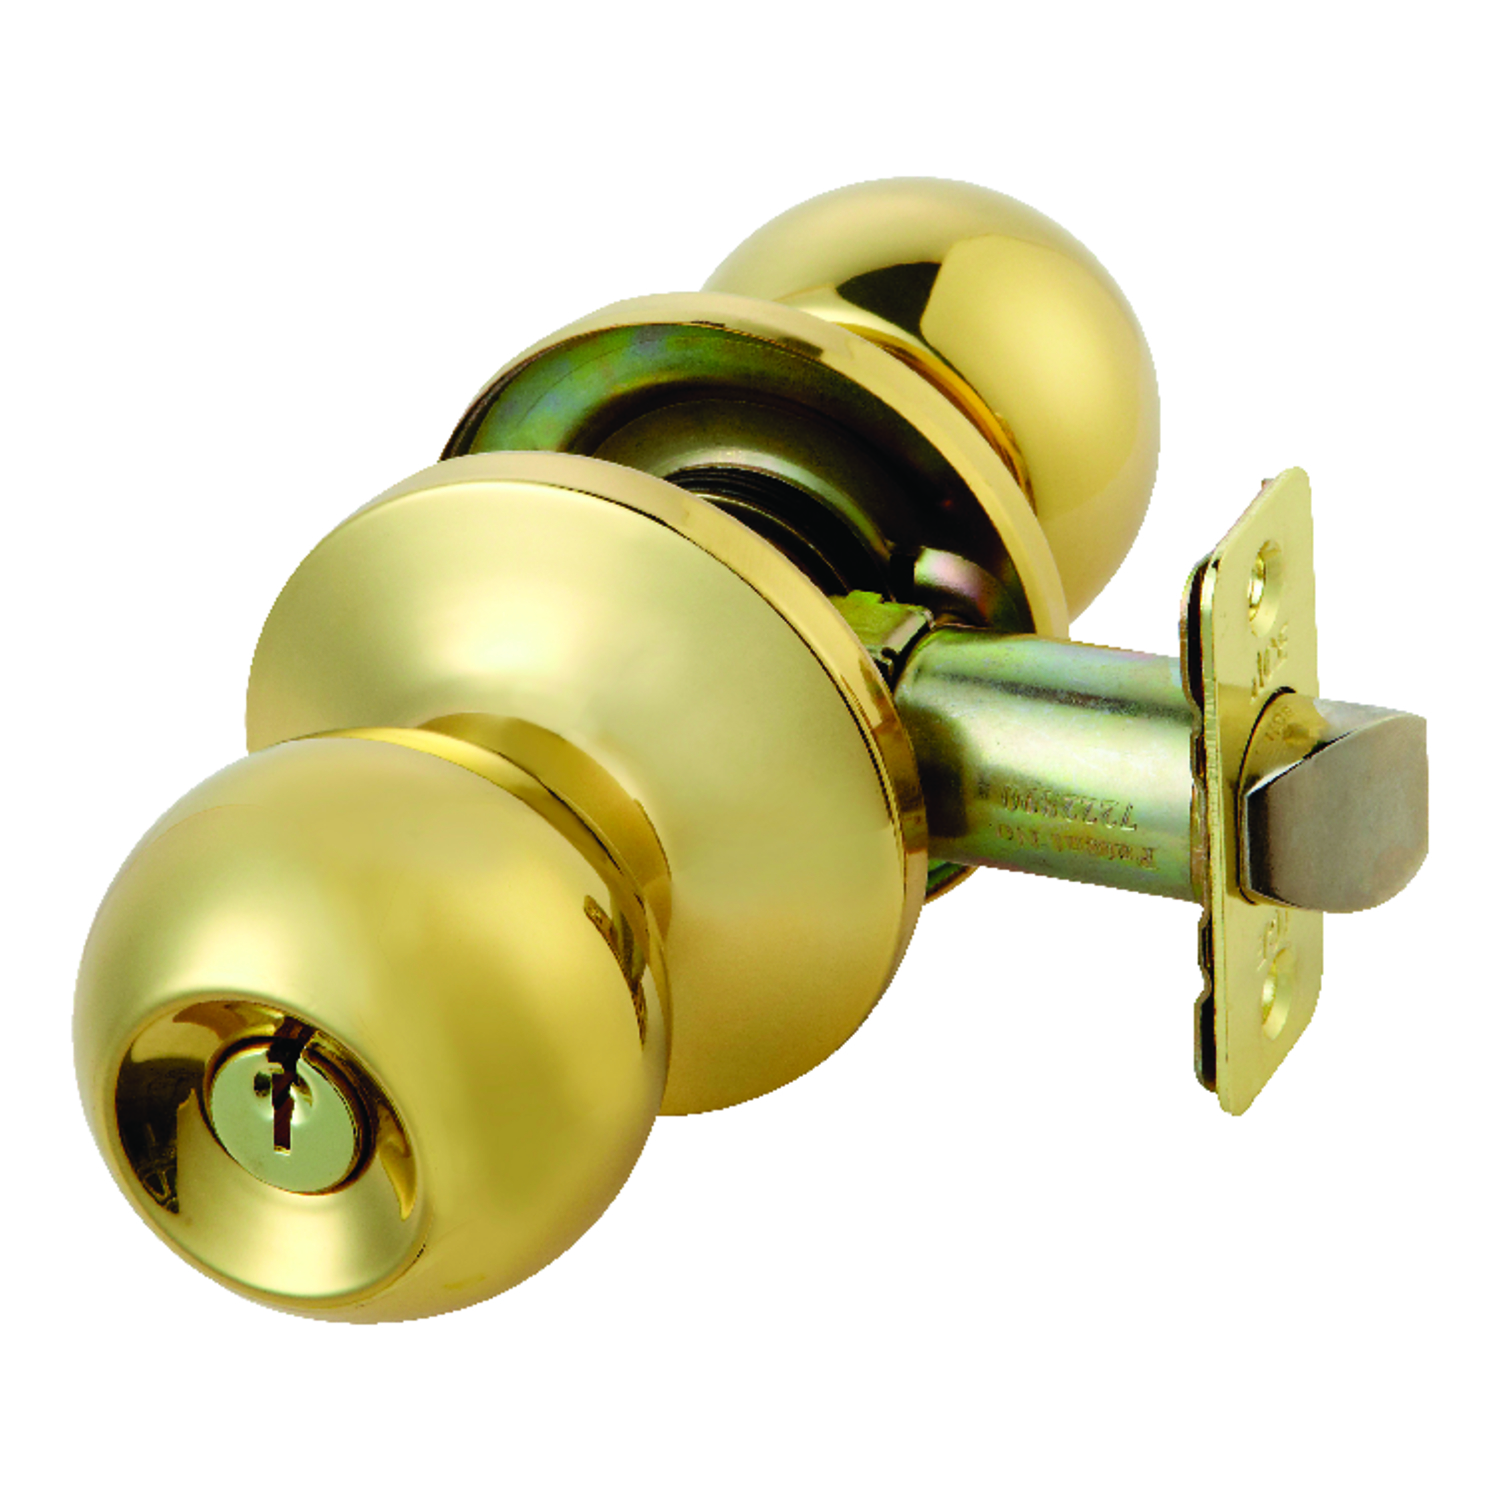 Ace  Ball  Polished Brass  Steel  ANSI/BHMA Grade 3  1-3/4 in. Entry Lockset